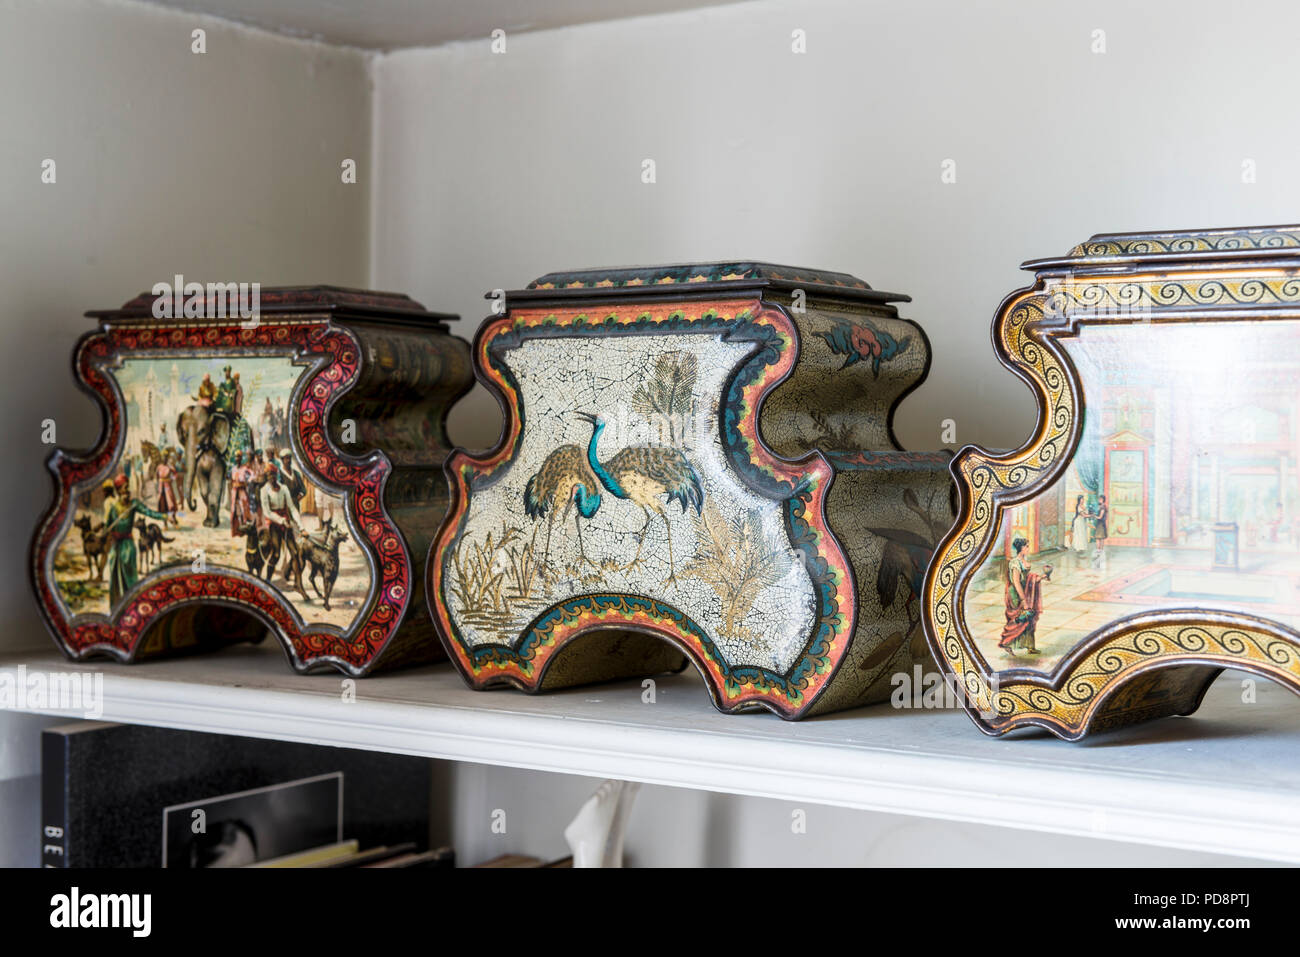 Three Huntley & Palmer oriental-style antique biscuit tins - Stock Image